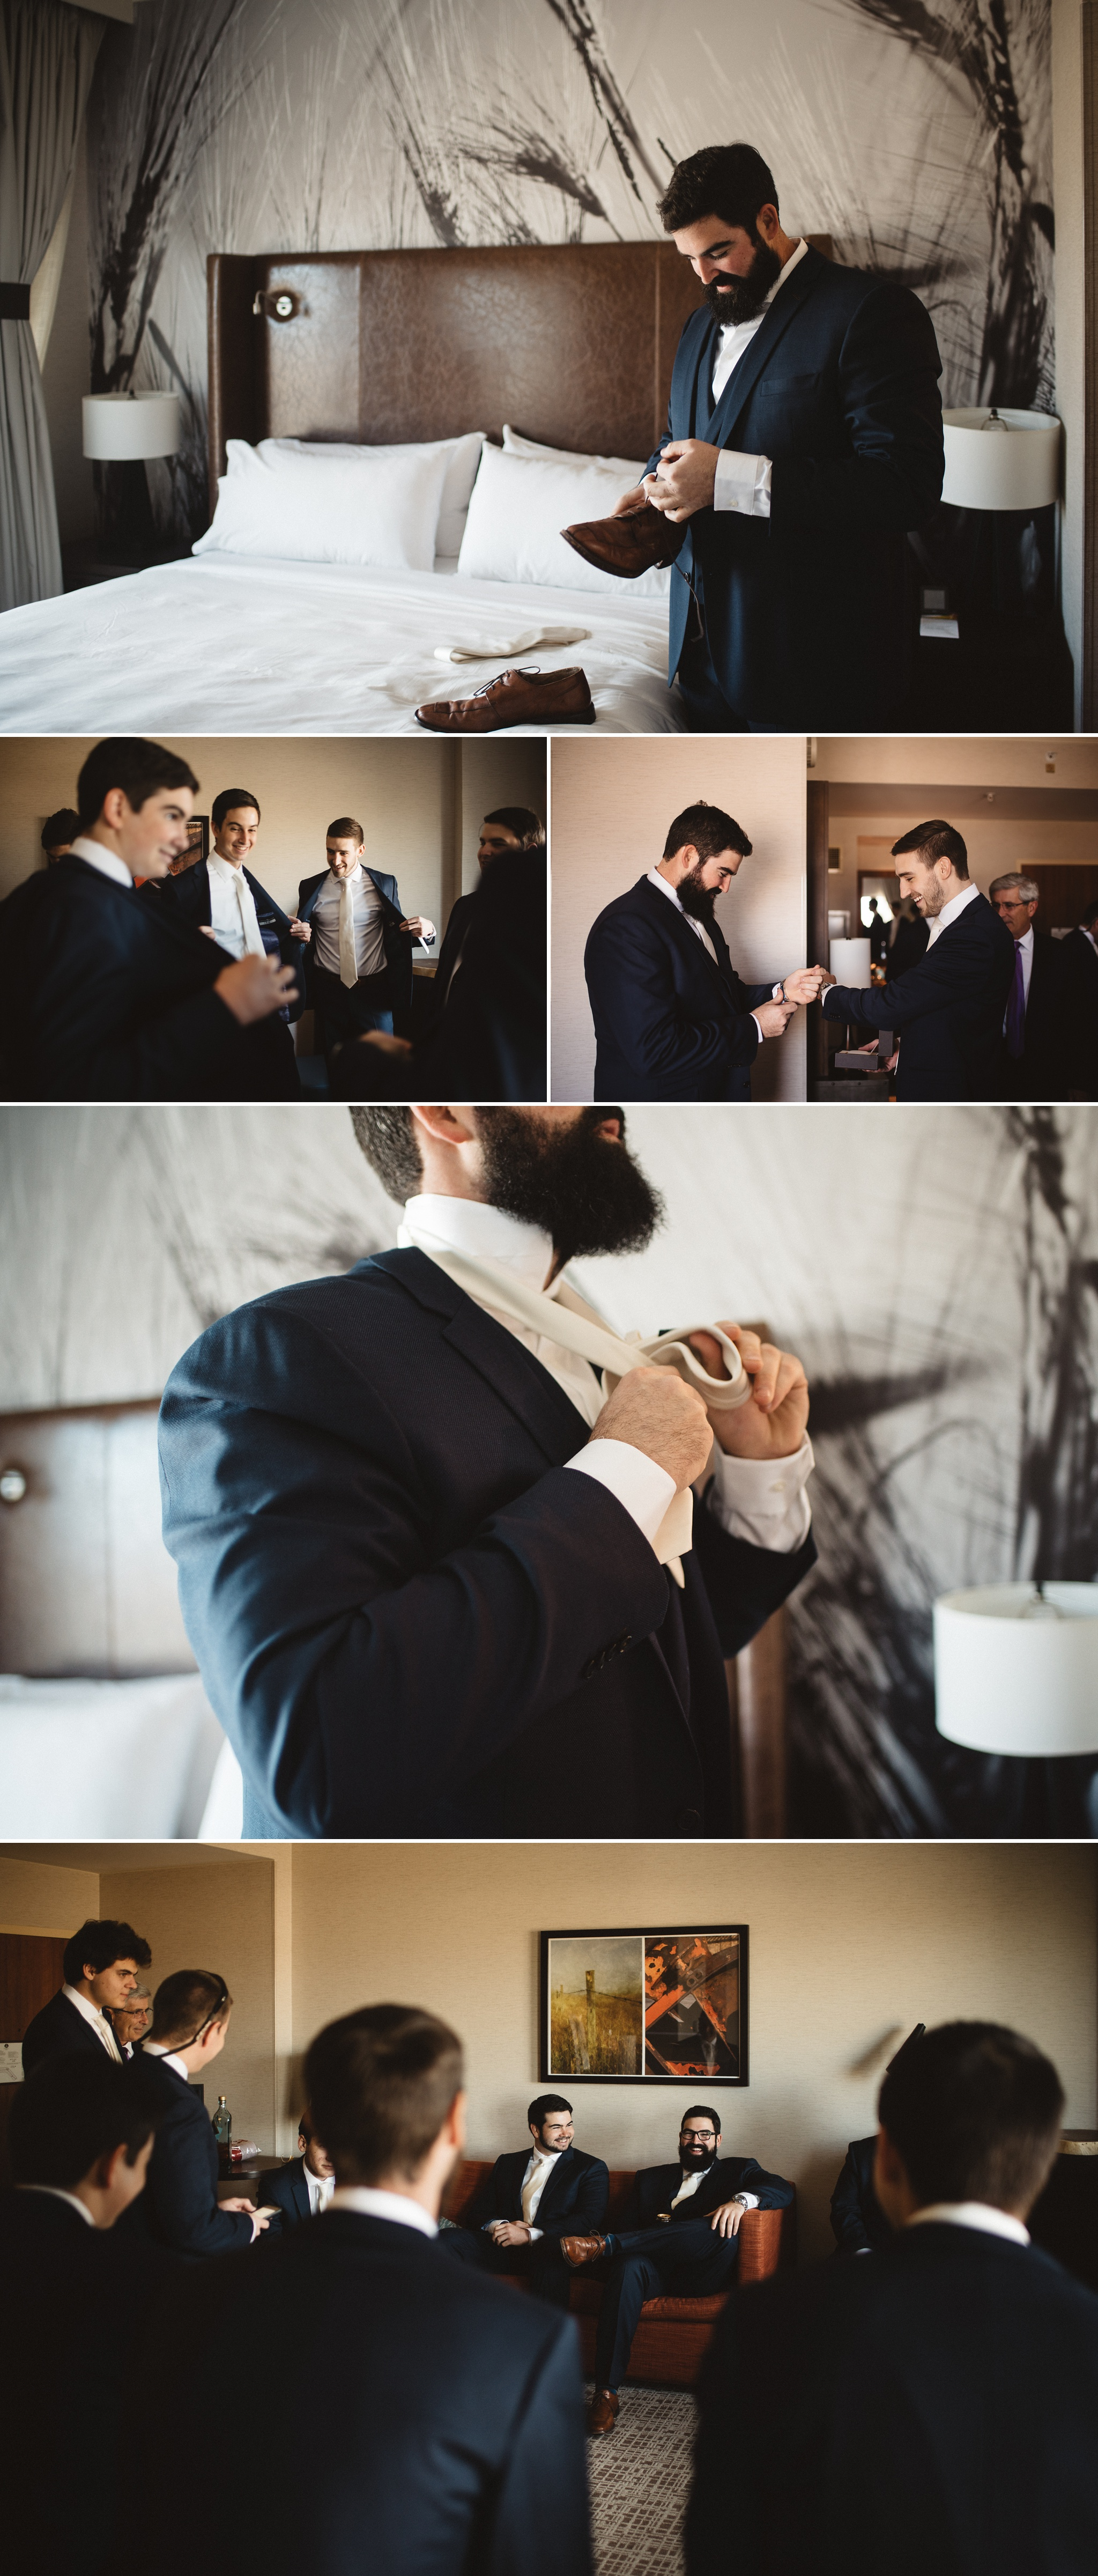 Charlie getting ready with his groomsmen at the Interlocken Hotel in Broomfield.